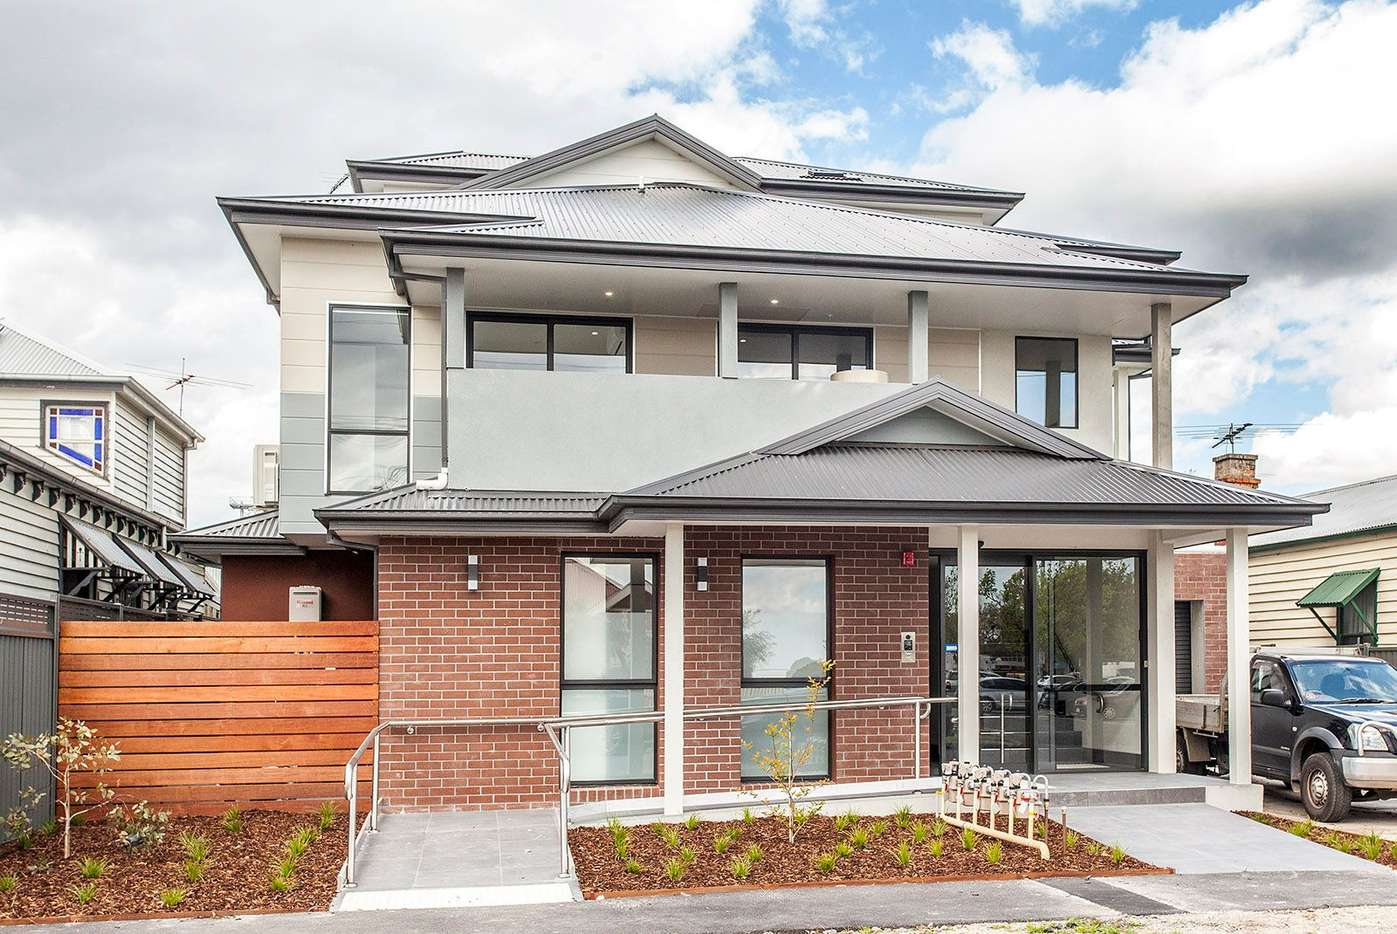 Main view of Homely apartment listing, 10 Oxford Street, Oakleigh, VIC 3166